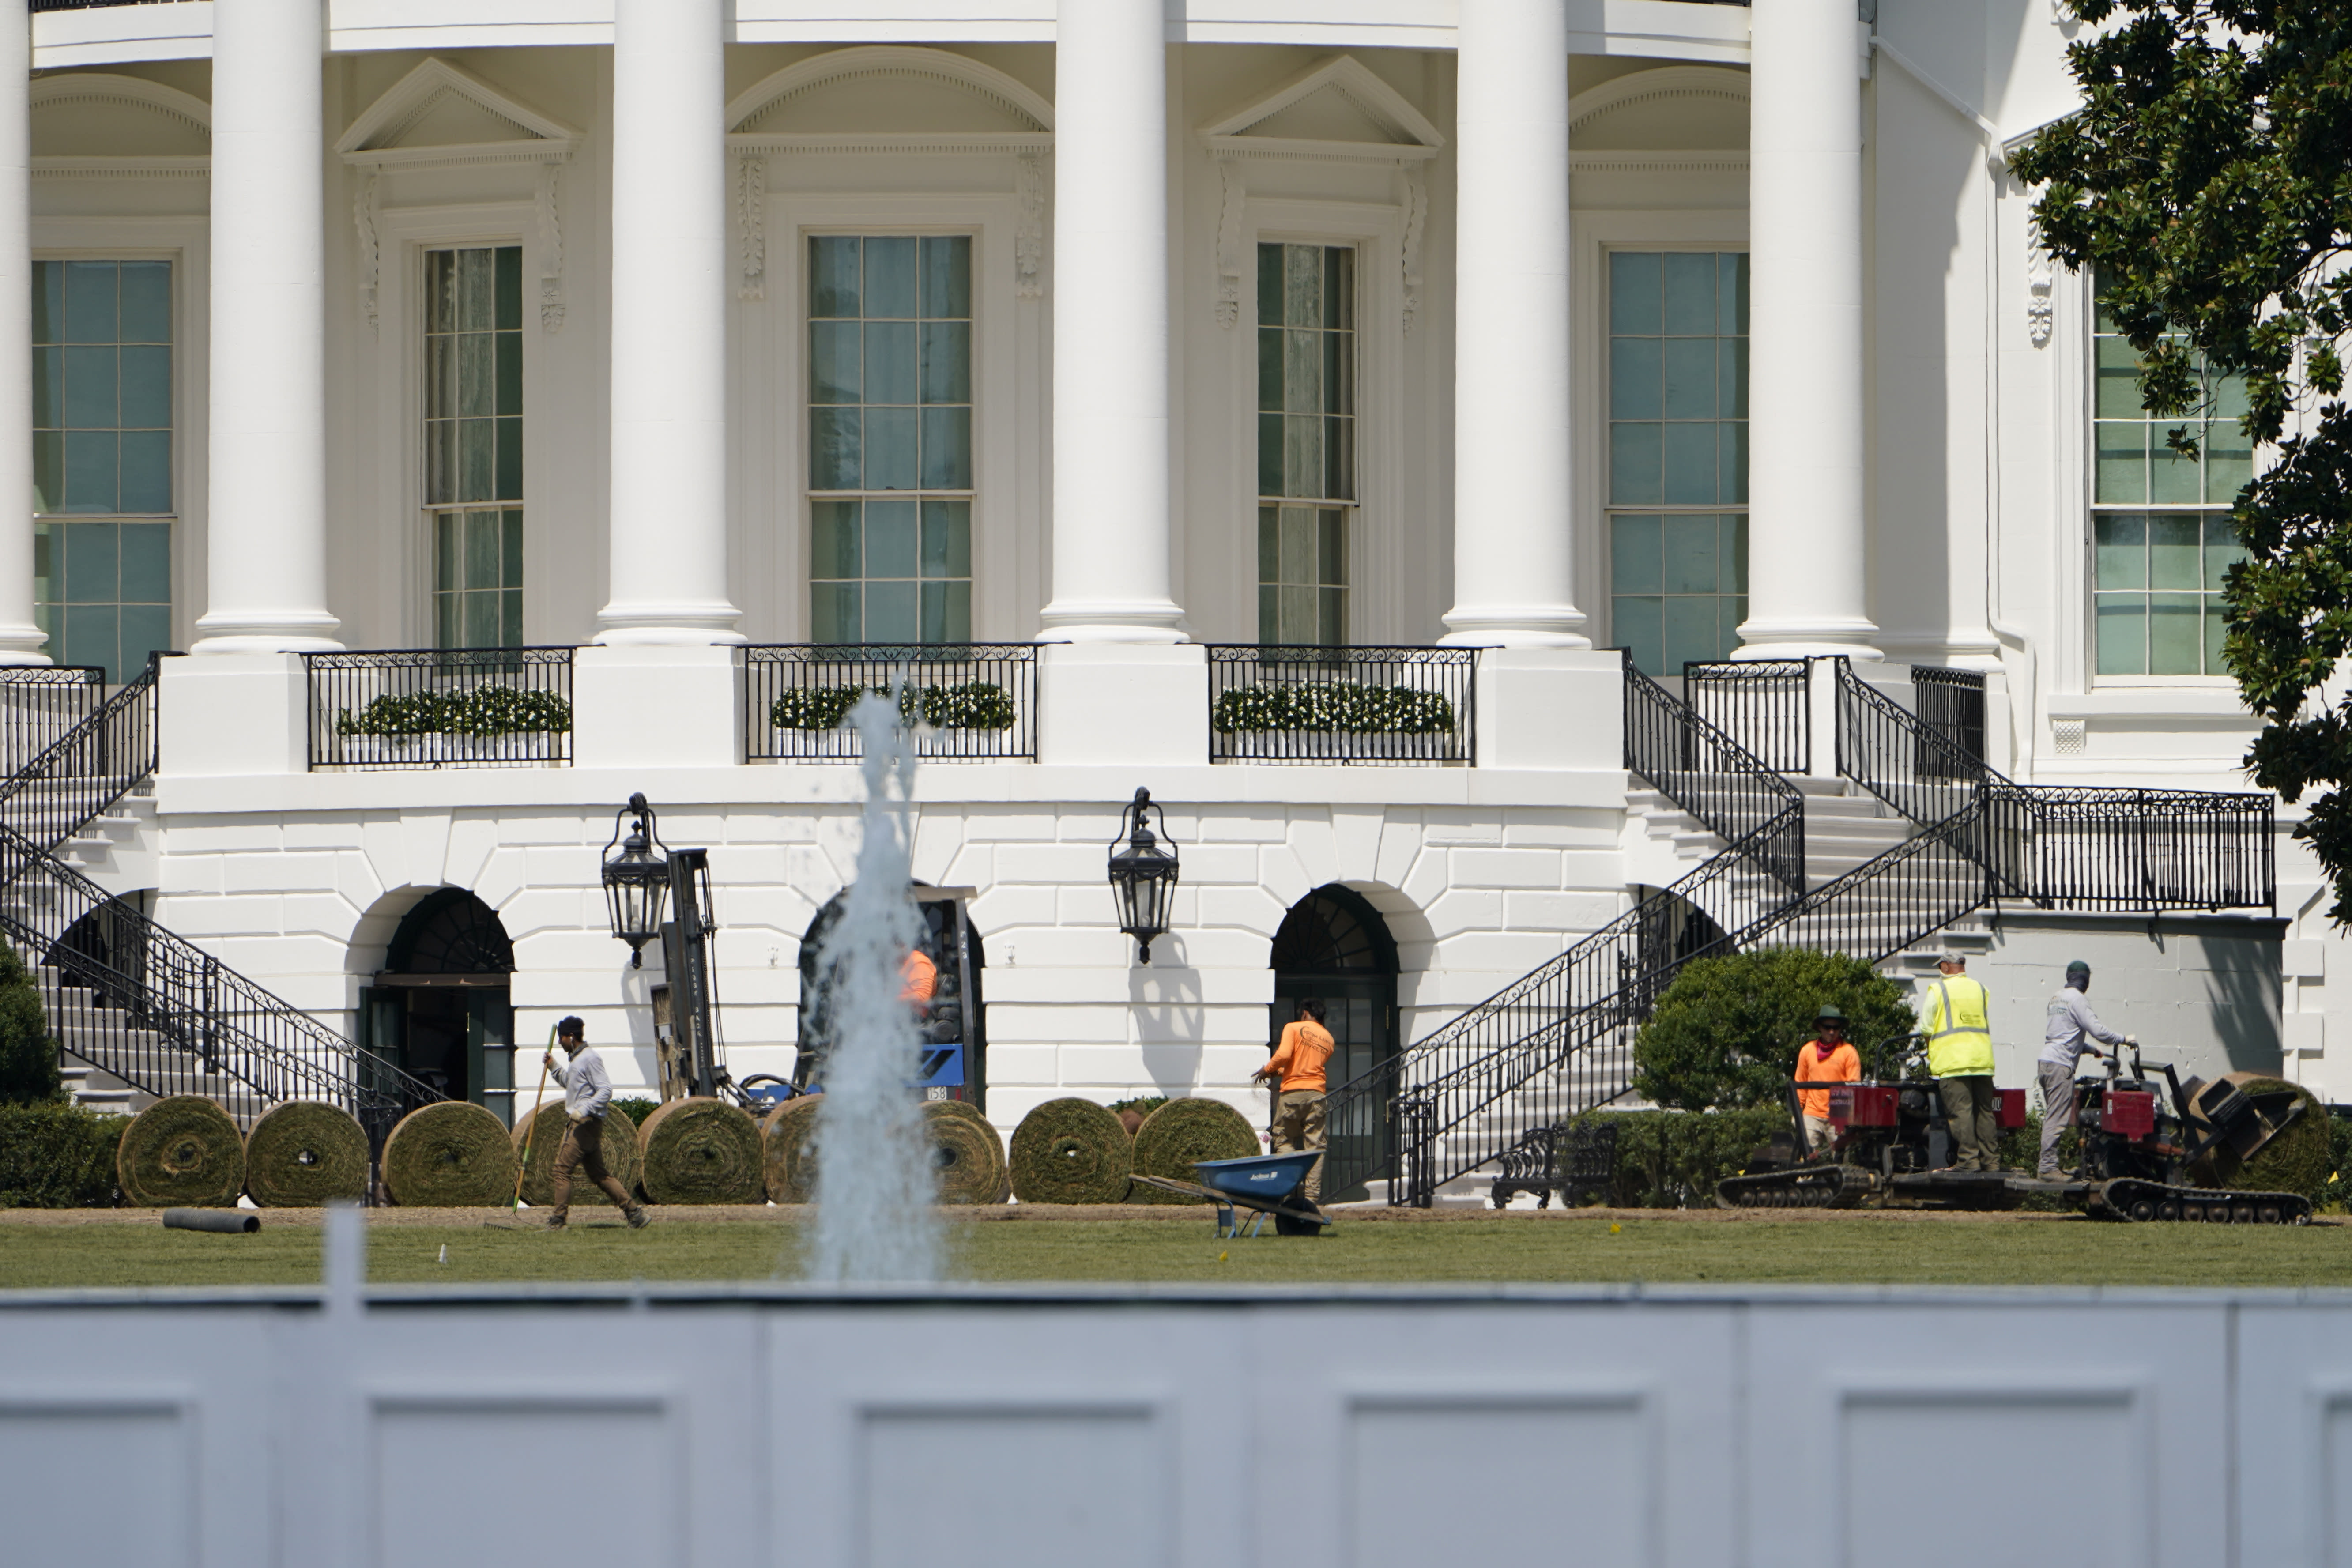 Workers lay sod on the South Lawn of the White House, Tuesday, Sept. 8, 2020, in Washington. The White House South Lawn and its iconic Rose Garden are undergoing extensive re-sodding and other work after last month's Republican National Convention turned them into a muddy mess. Crews have been working to repair damage to the public grounds, including browning of the South Lawn and mud patches in the Rose Garden, after the spaces were used as backdrops for President Donald Trump's convention events. (AP Photo/Jacquelyn Martin)